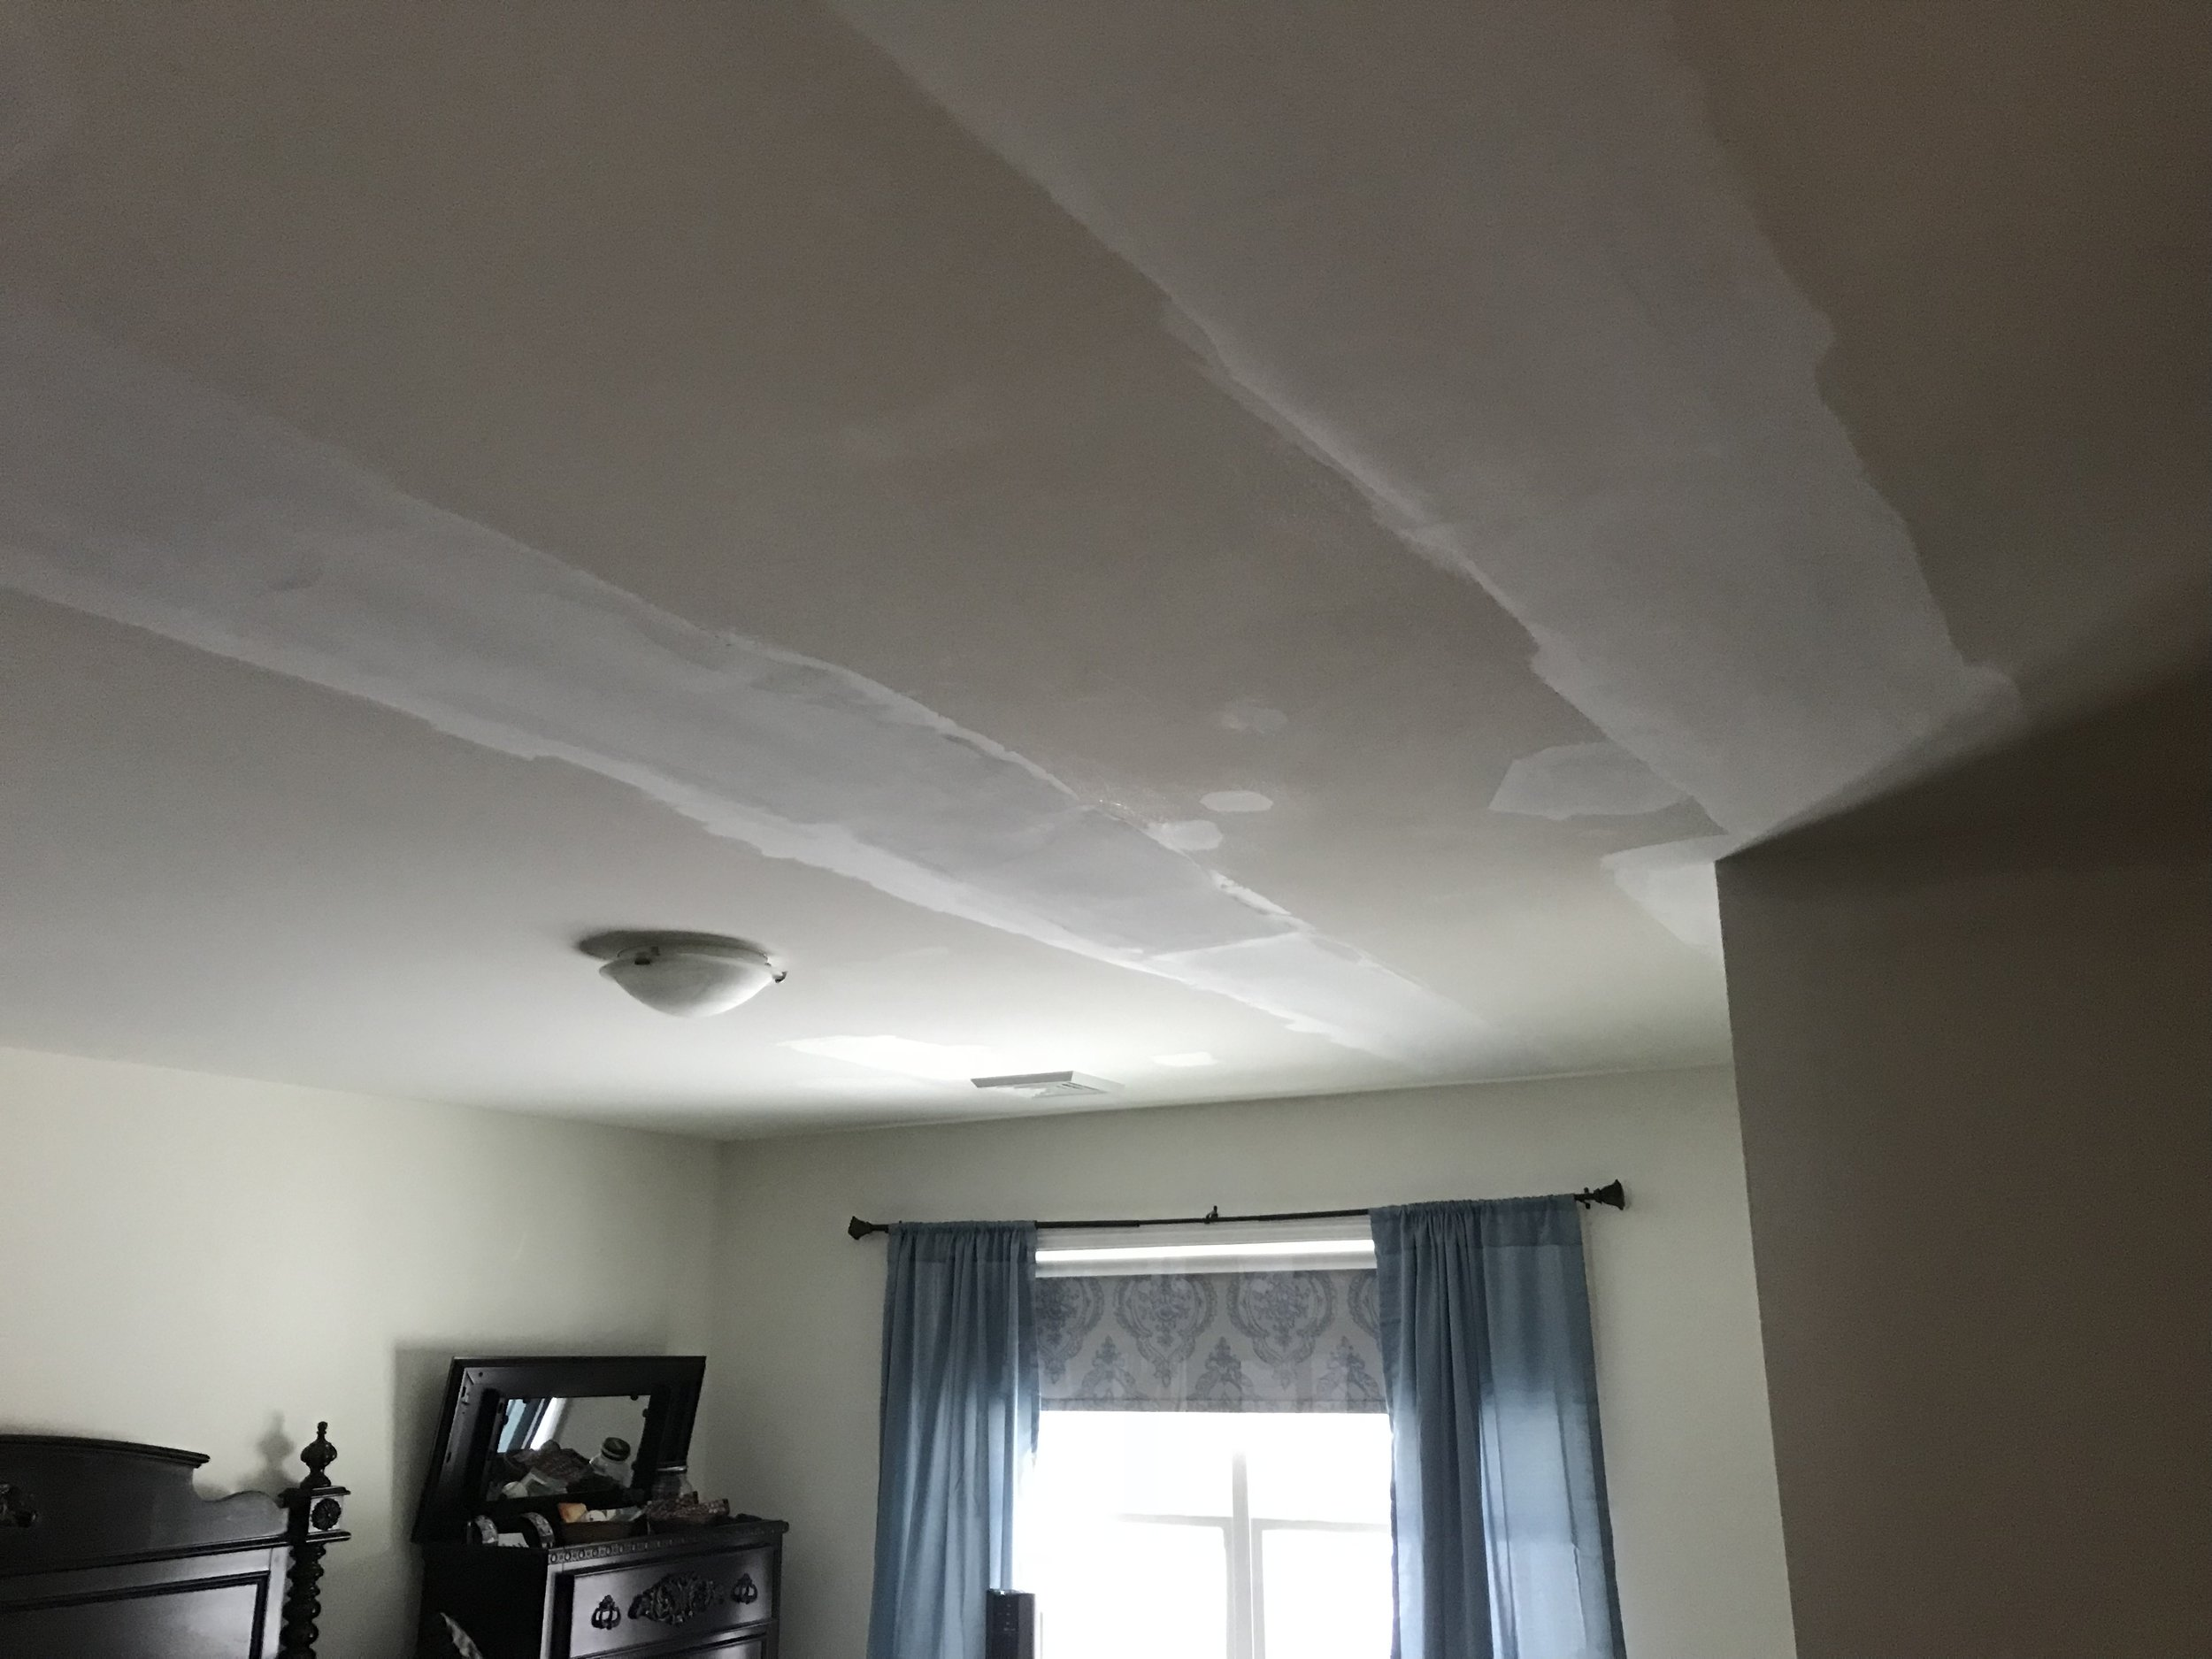 Drywall Repaired Prior to Painting